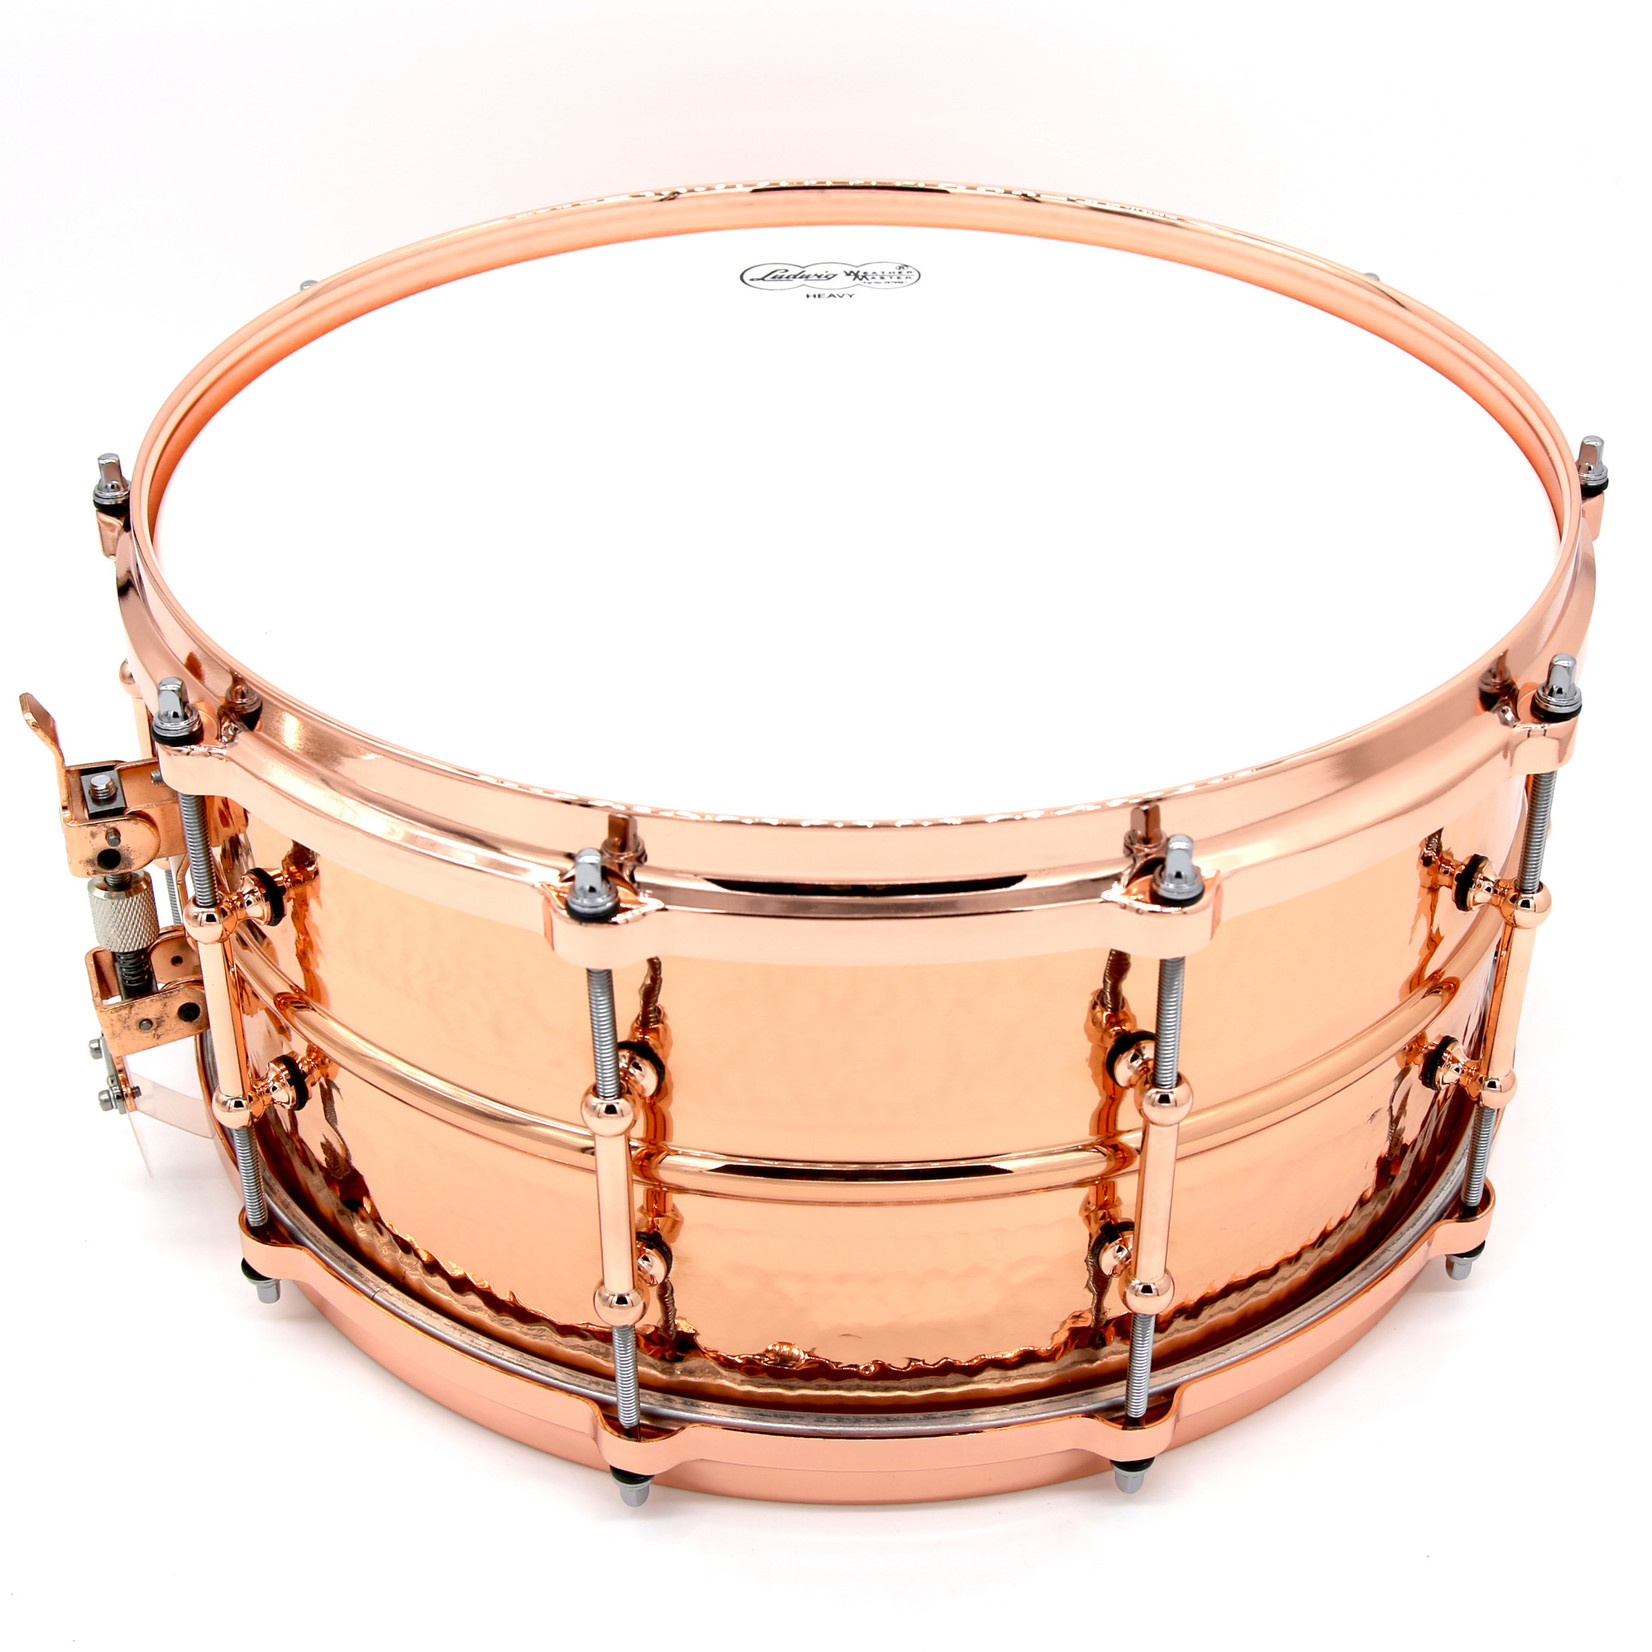 Ludwig LUDWIG COPPERPHONIC HAMMERED W/TUBE LUGS COPPER HARDWARE LC662KTC